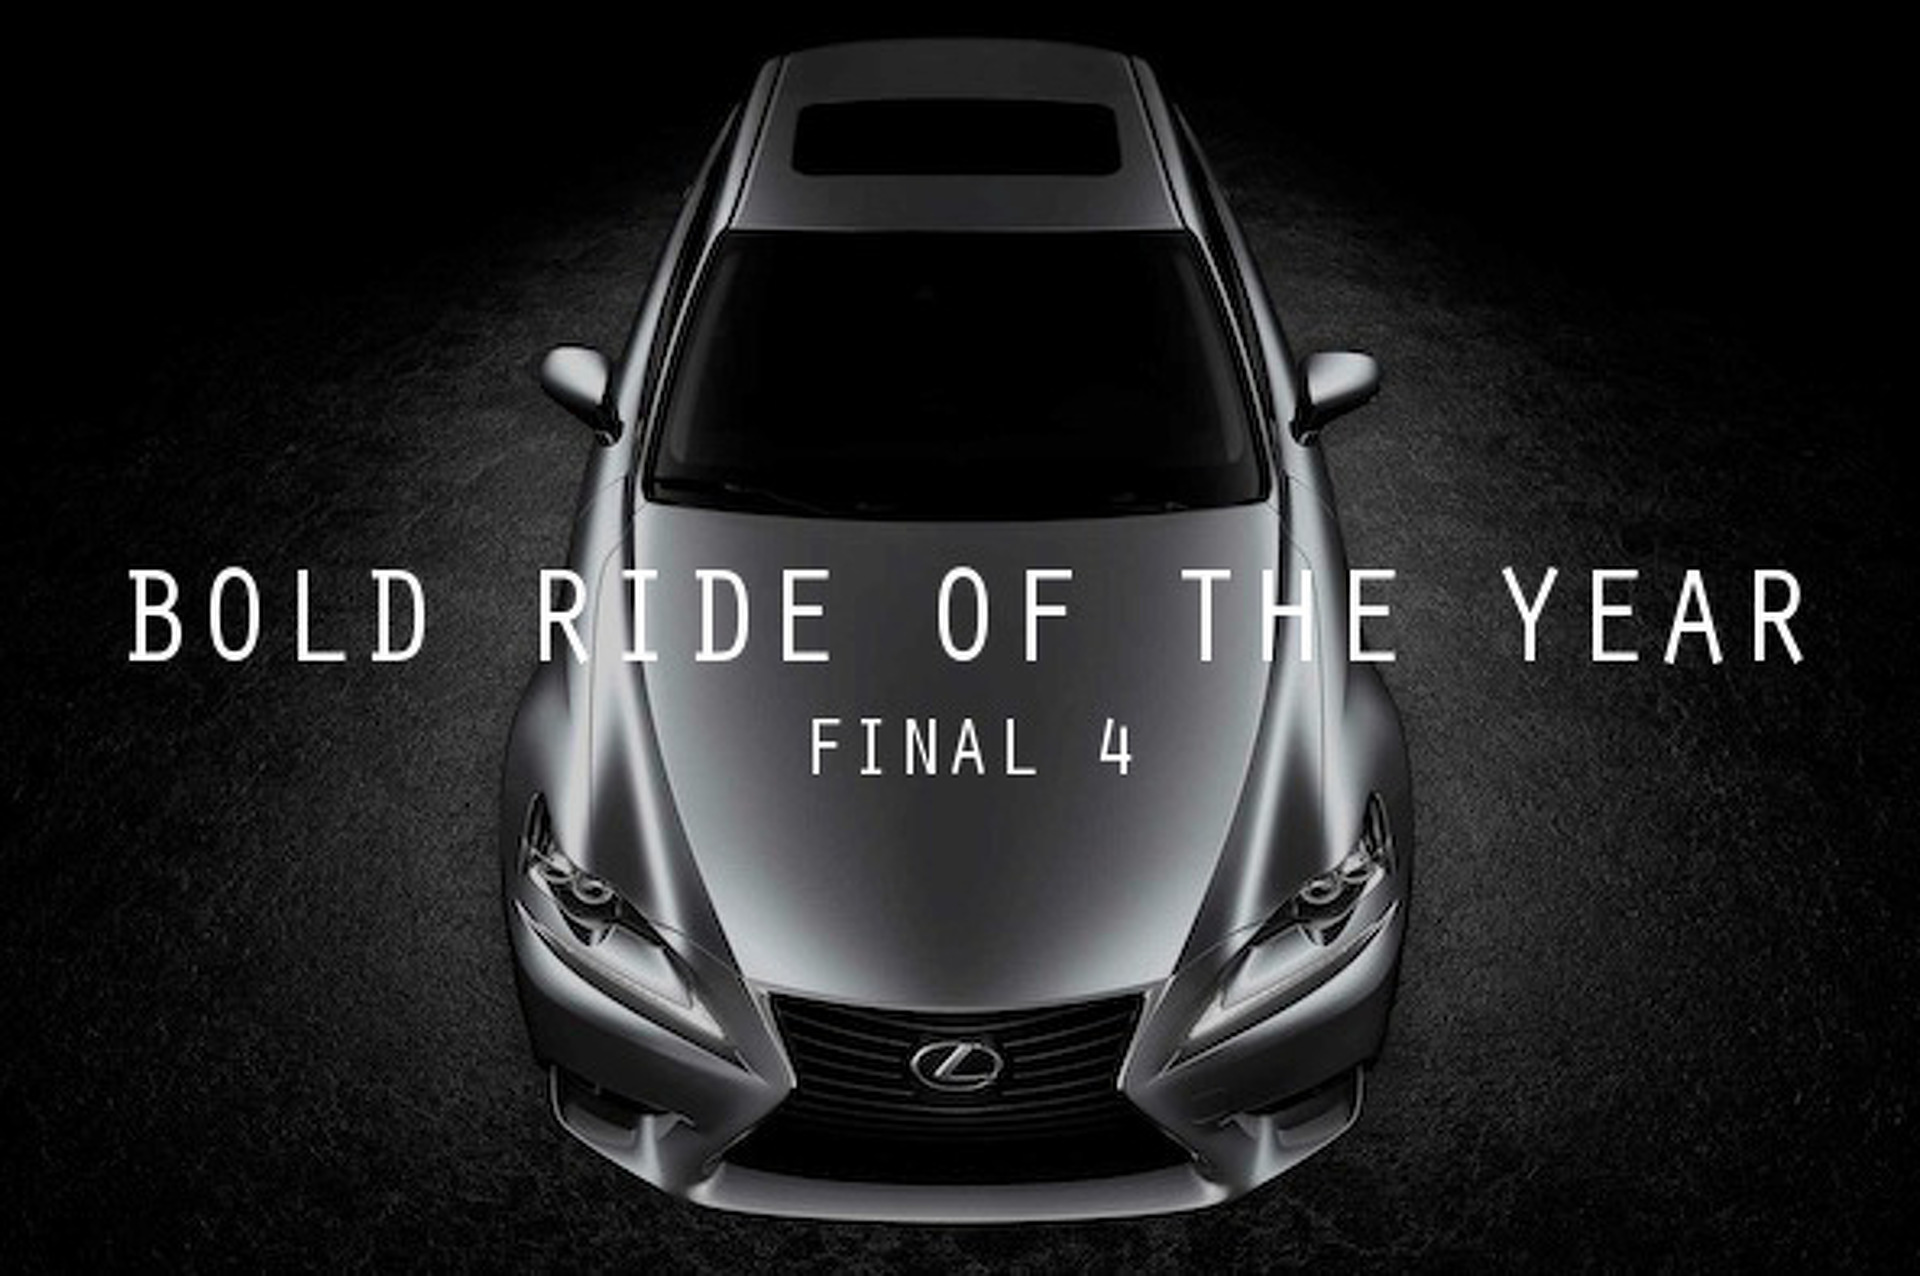 2013 Bold Ride of the Year: The Final 4